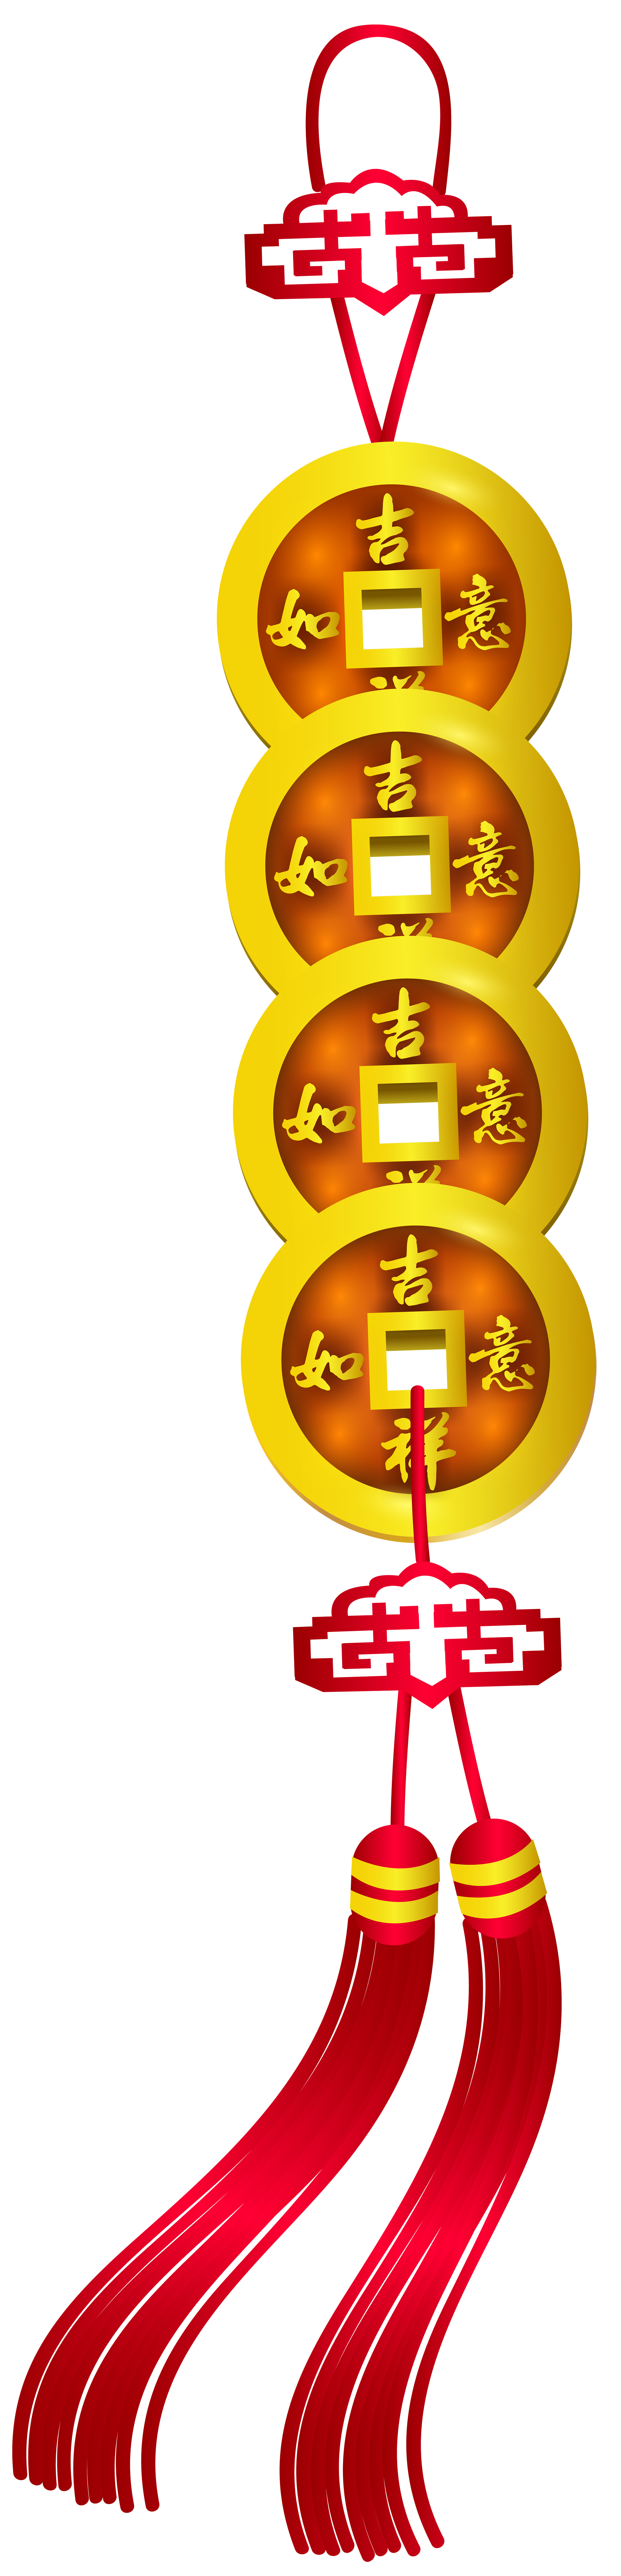 Transparent decoration chinese new year. Png clip art best